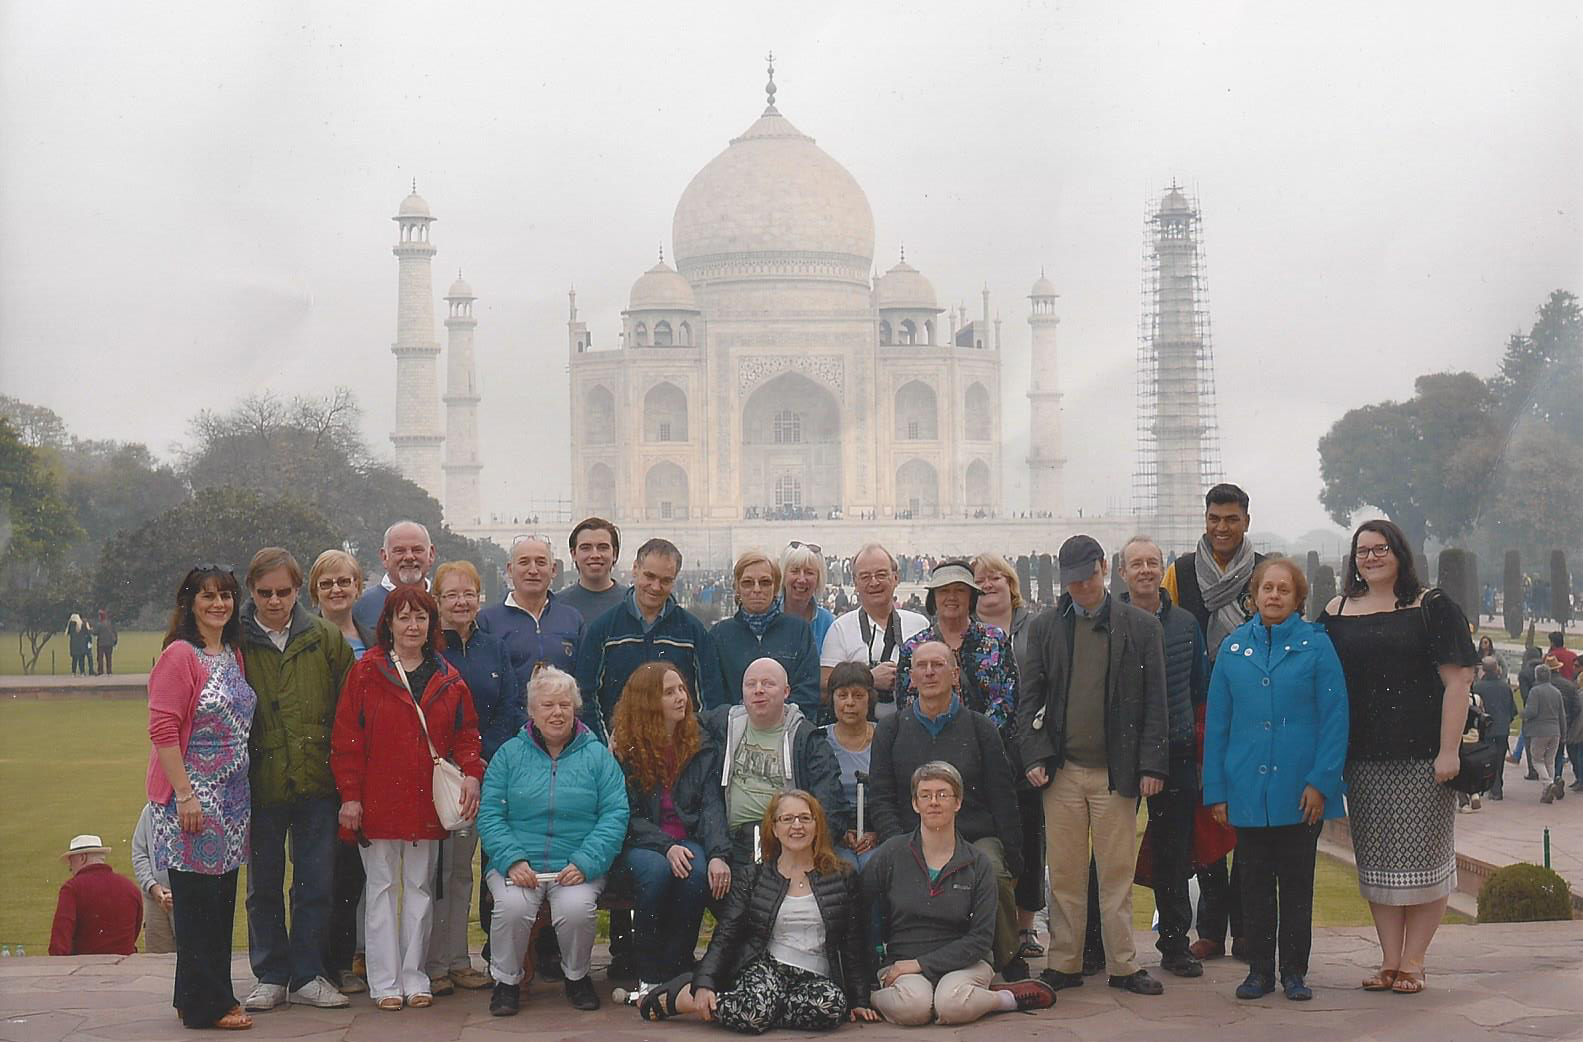 Will with a Traveleyes group at the mighty Taj Mahal! The Taj is rising in the background, with 4 impressive spires and a vast central dome.